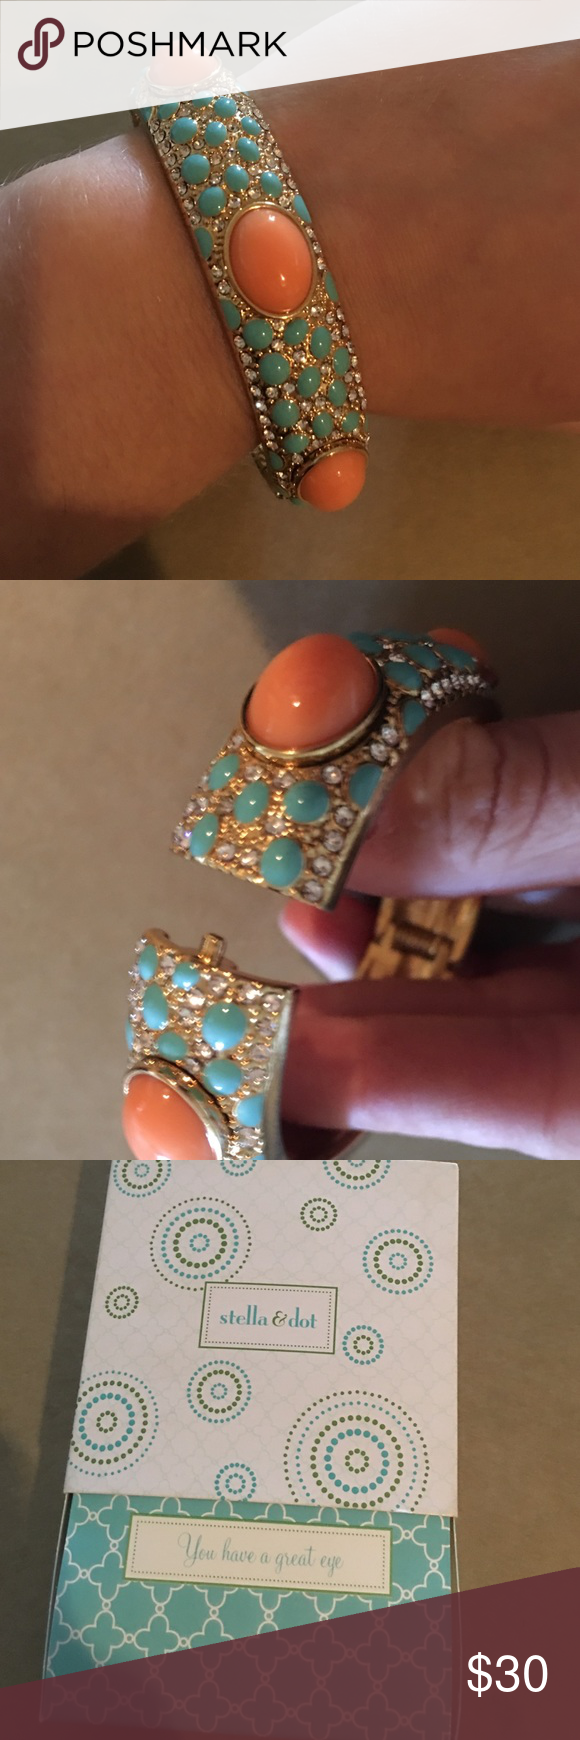 Stella & Dot Sunset Bangle Beautiful Stella & Dot Sunset gold angle with diamond, turquoise & coral details. Comfortable and like new. Includes the original packaging. Pairs great with my listing for Paige Bracelet. Stella & Dot Jewelry Bracelets